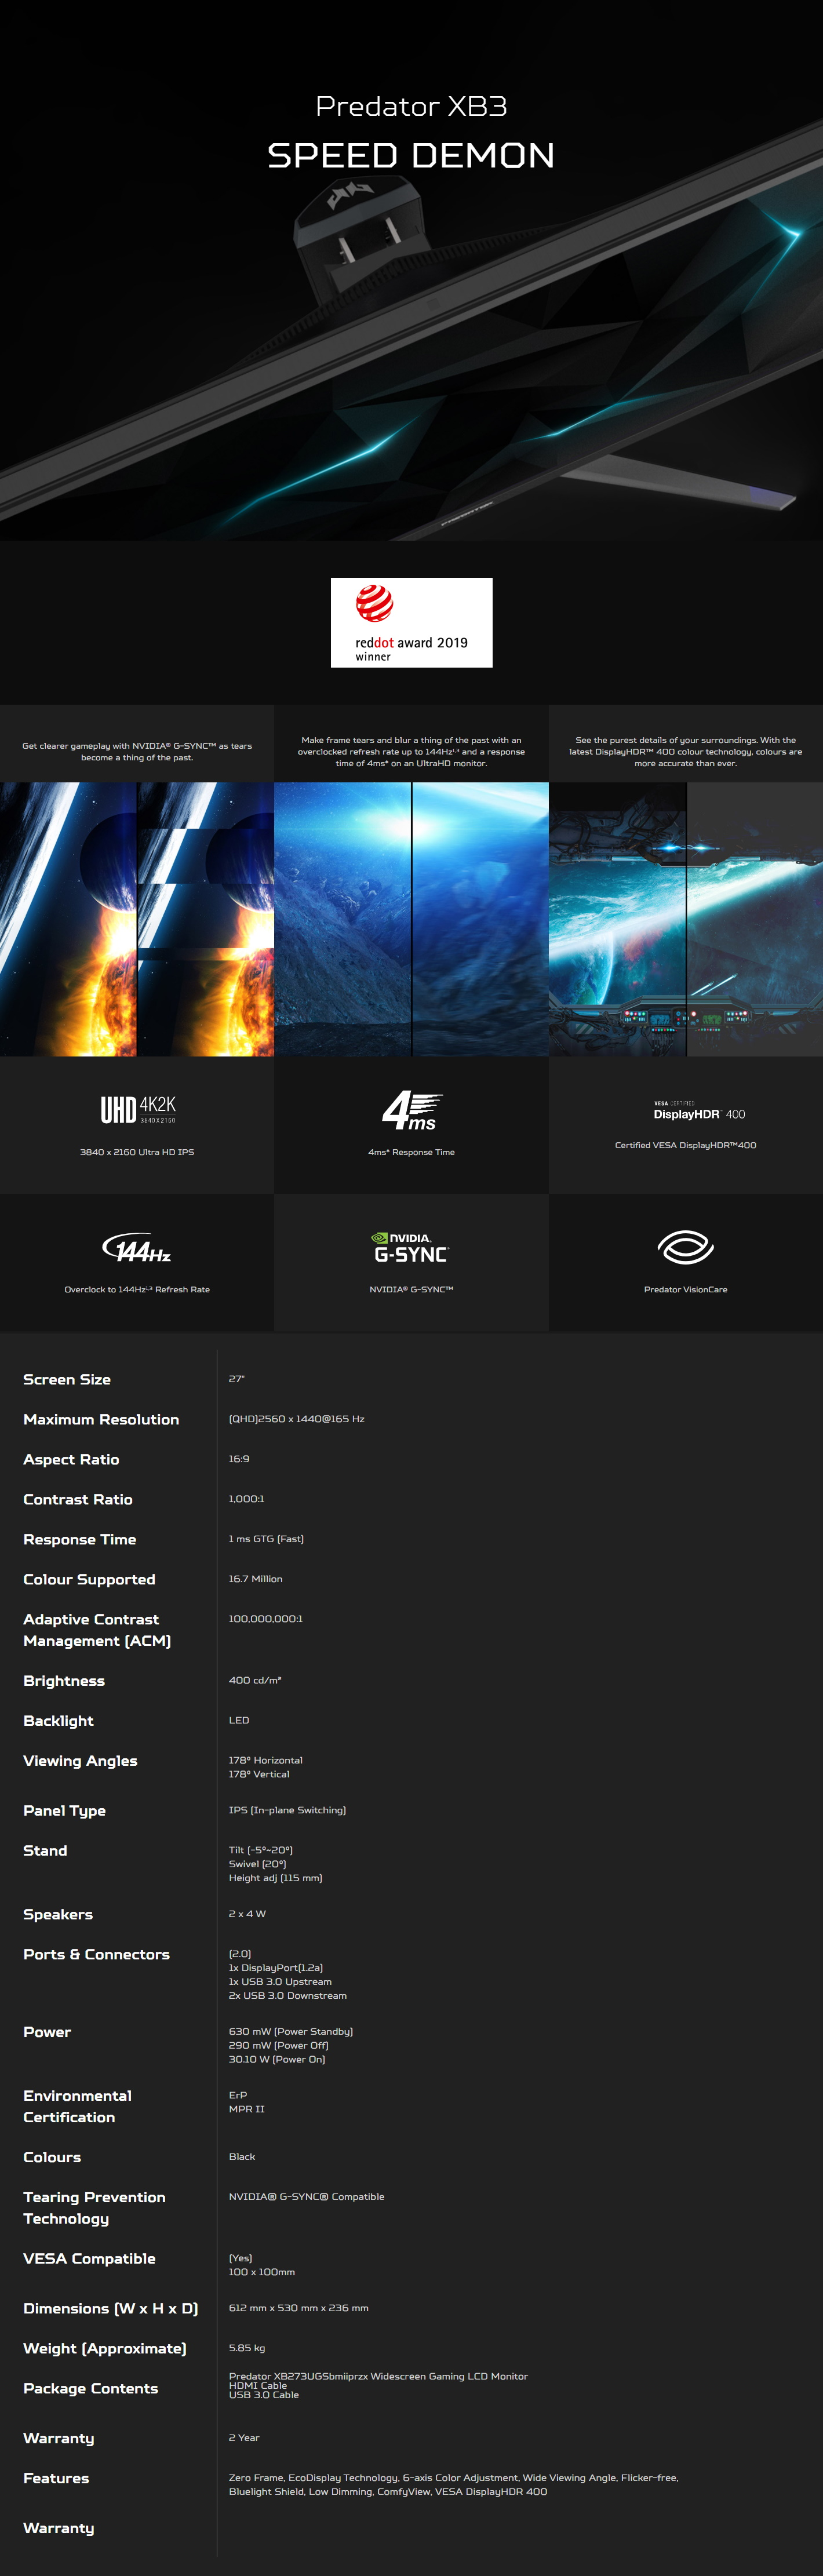 """A large marketing image providing additional information about the product Acer XB273UGS 27"""" QHD 165Hz 1MS IPS LED Gaming Monitor - Additional alt info not provided"""